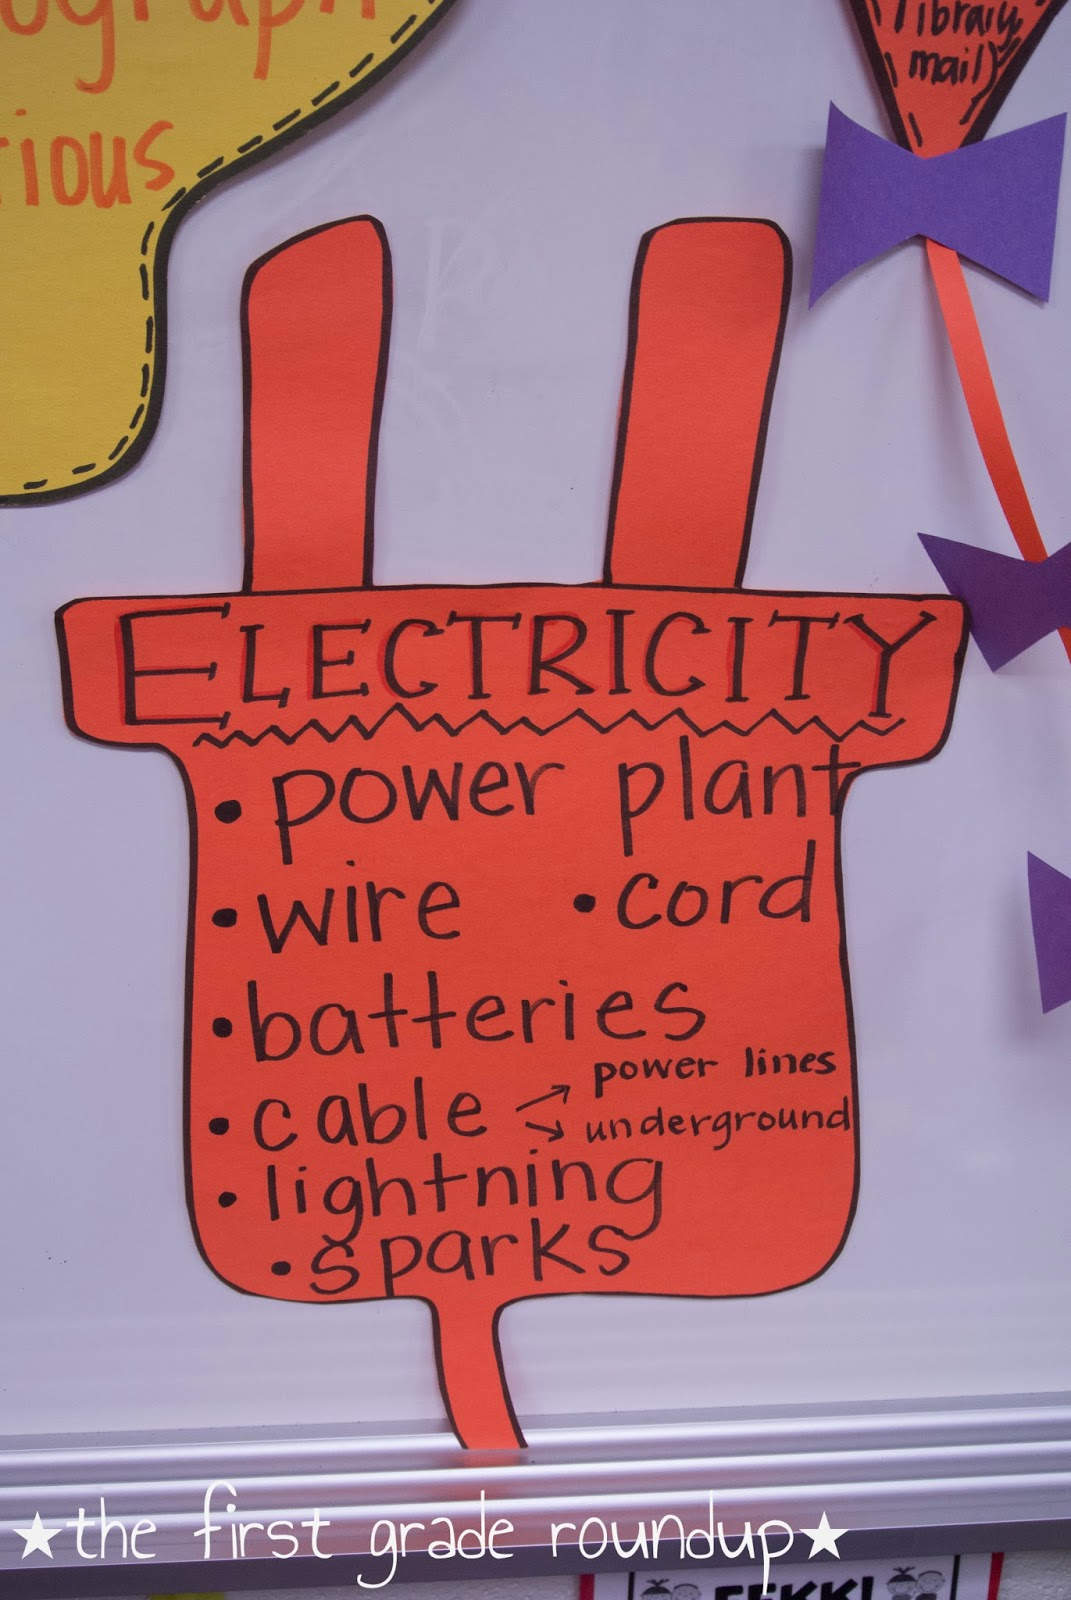 Science Of Electricity Firstgraderoundup On Pinterest Electric Circuit Electrical Safety And After That We Brainstormed A List Toys Need Cords Or Batteries To Work The Kids Quickly Saw How Important It Was Their Lives